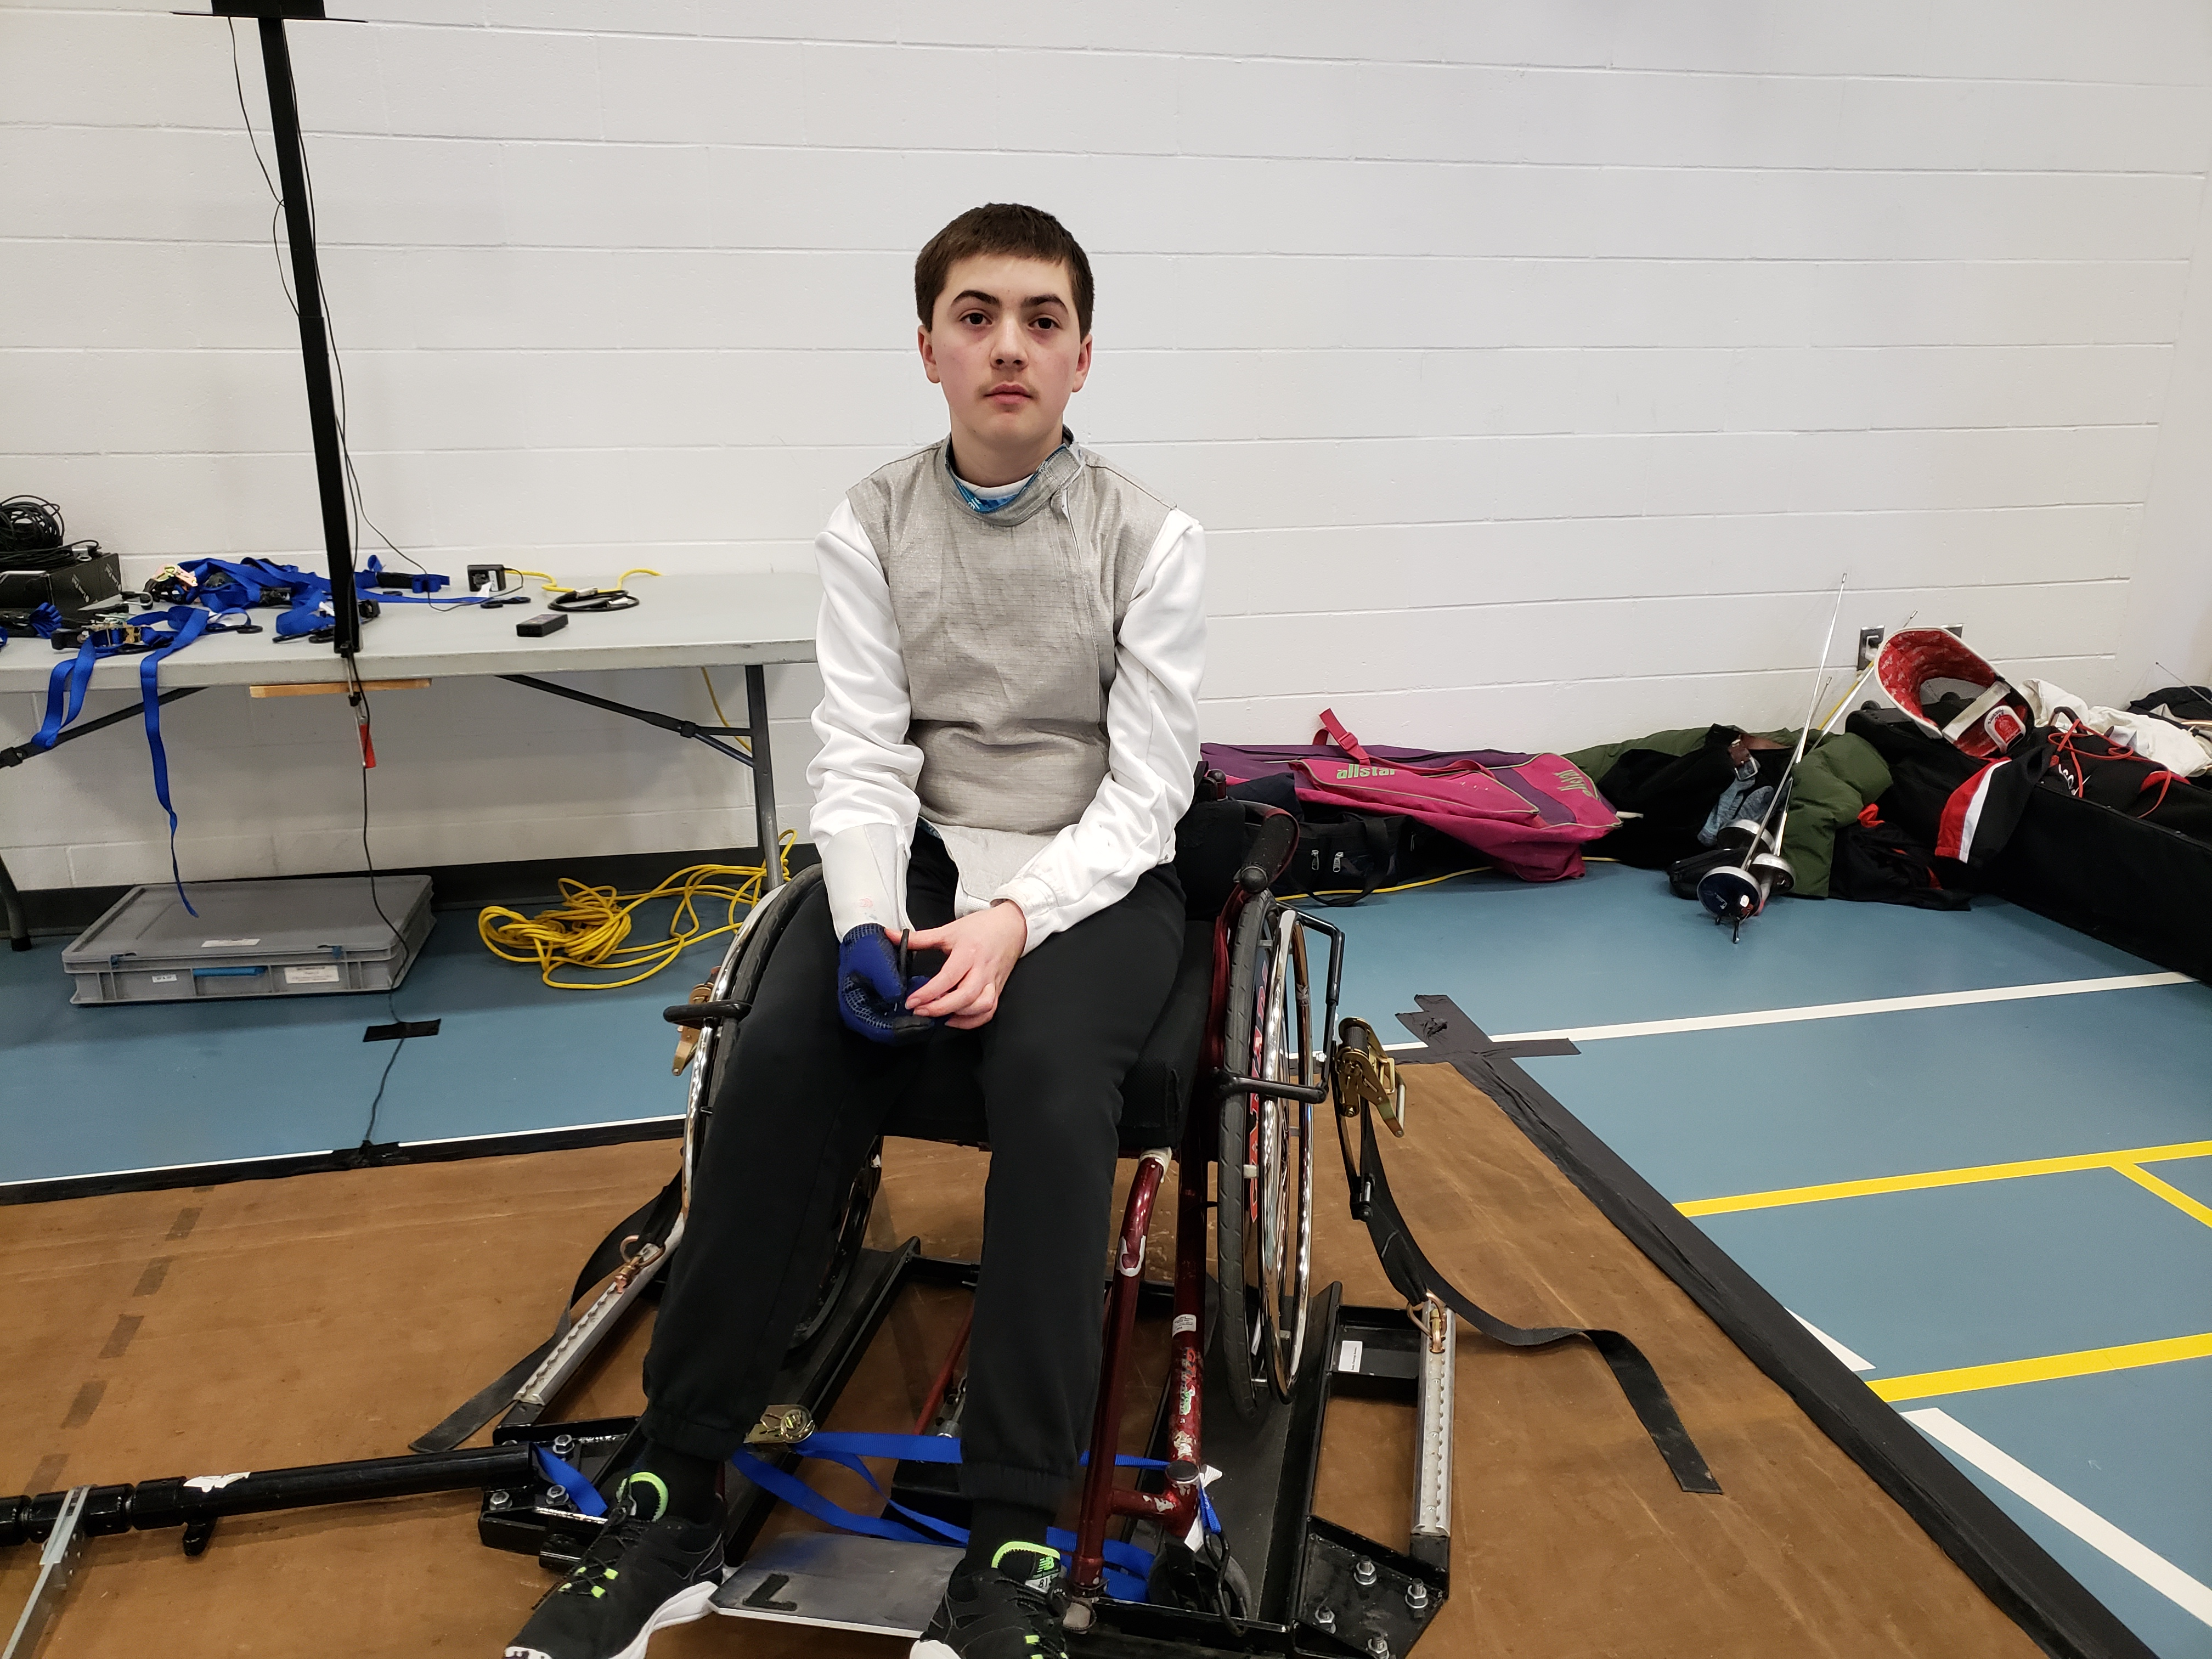 Kai in his fencing gear and his altered wheelchair